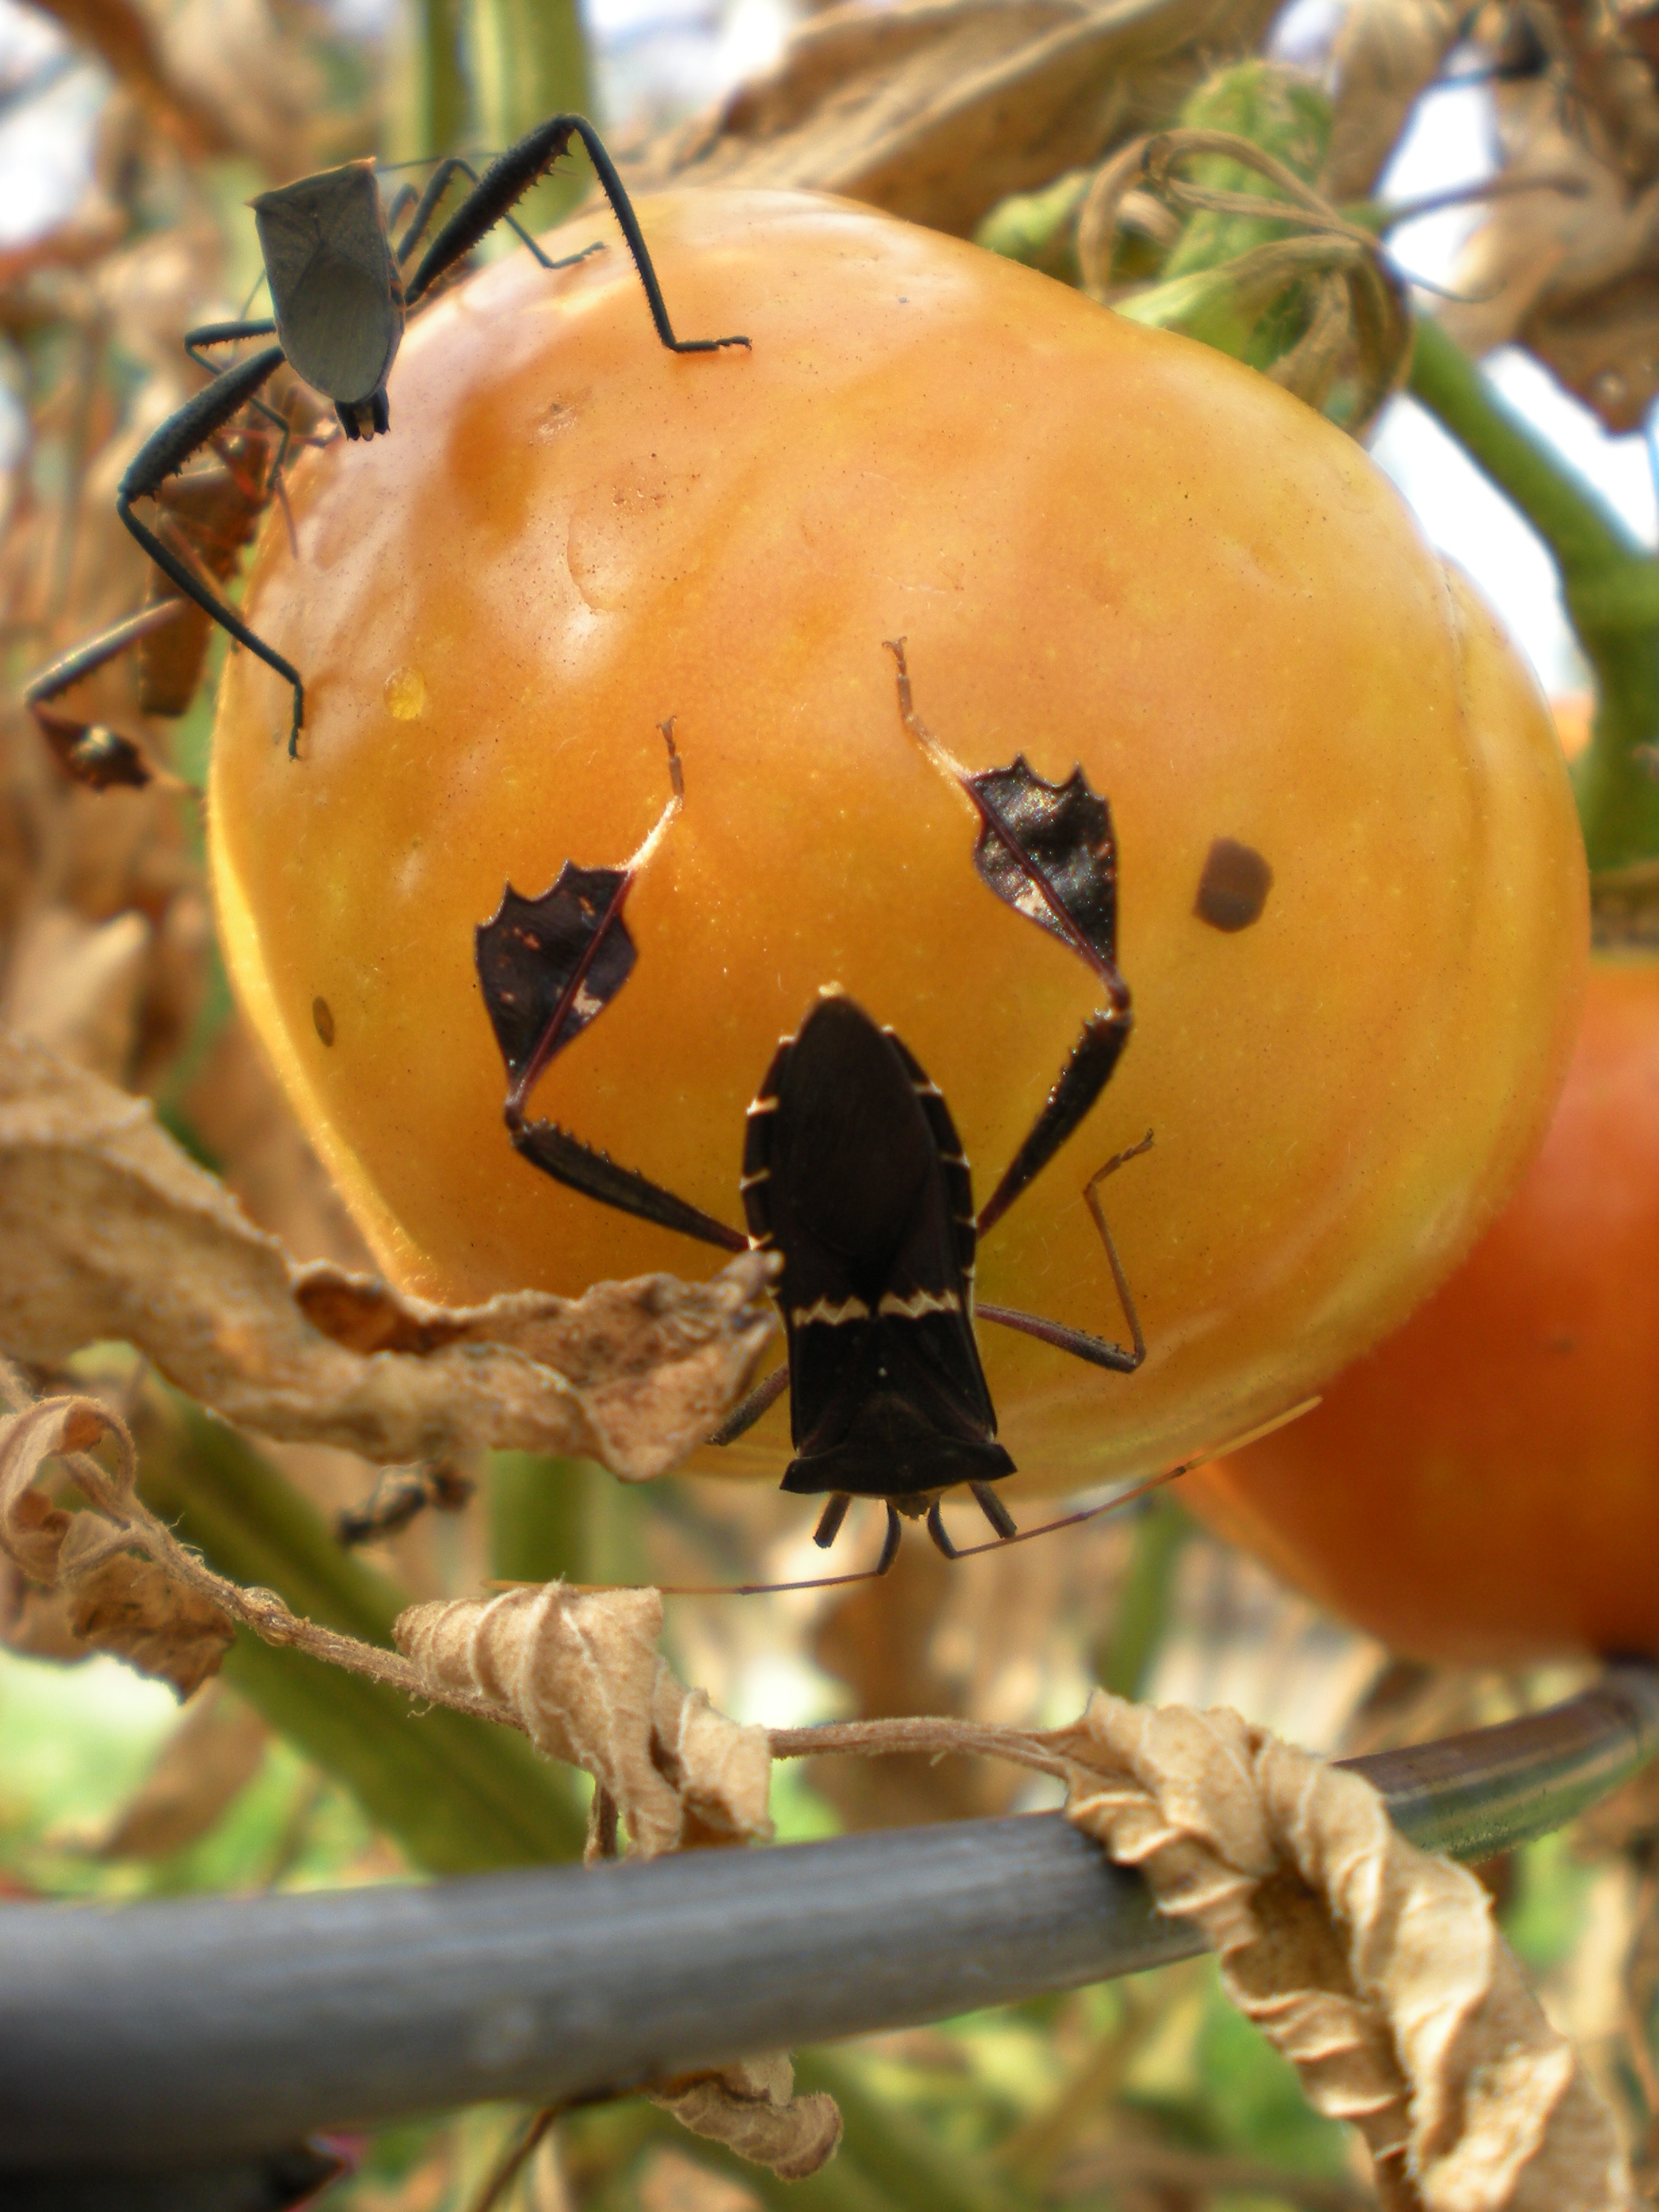 Finding Leaf-footed Bugs in Your Tomatoes? | Harris County ...